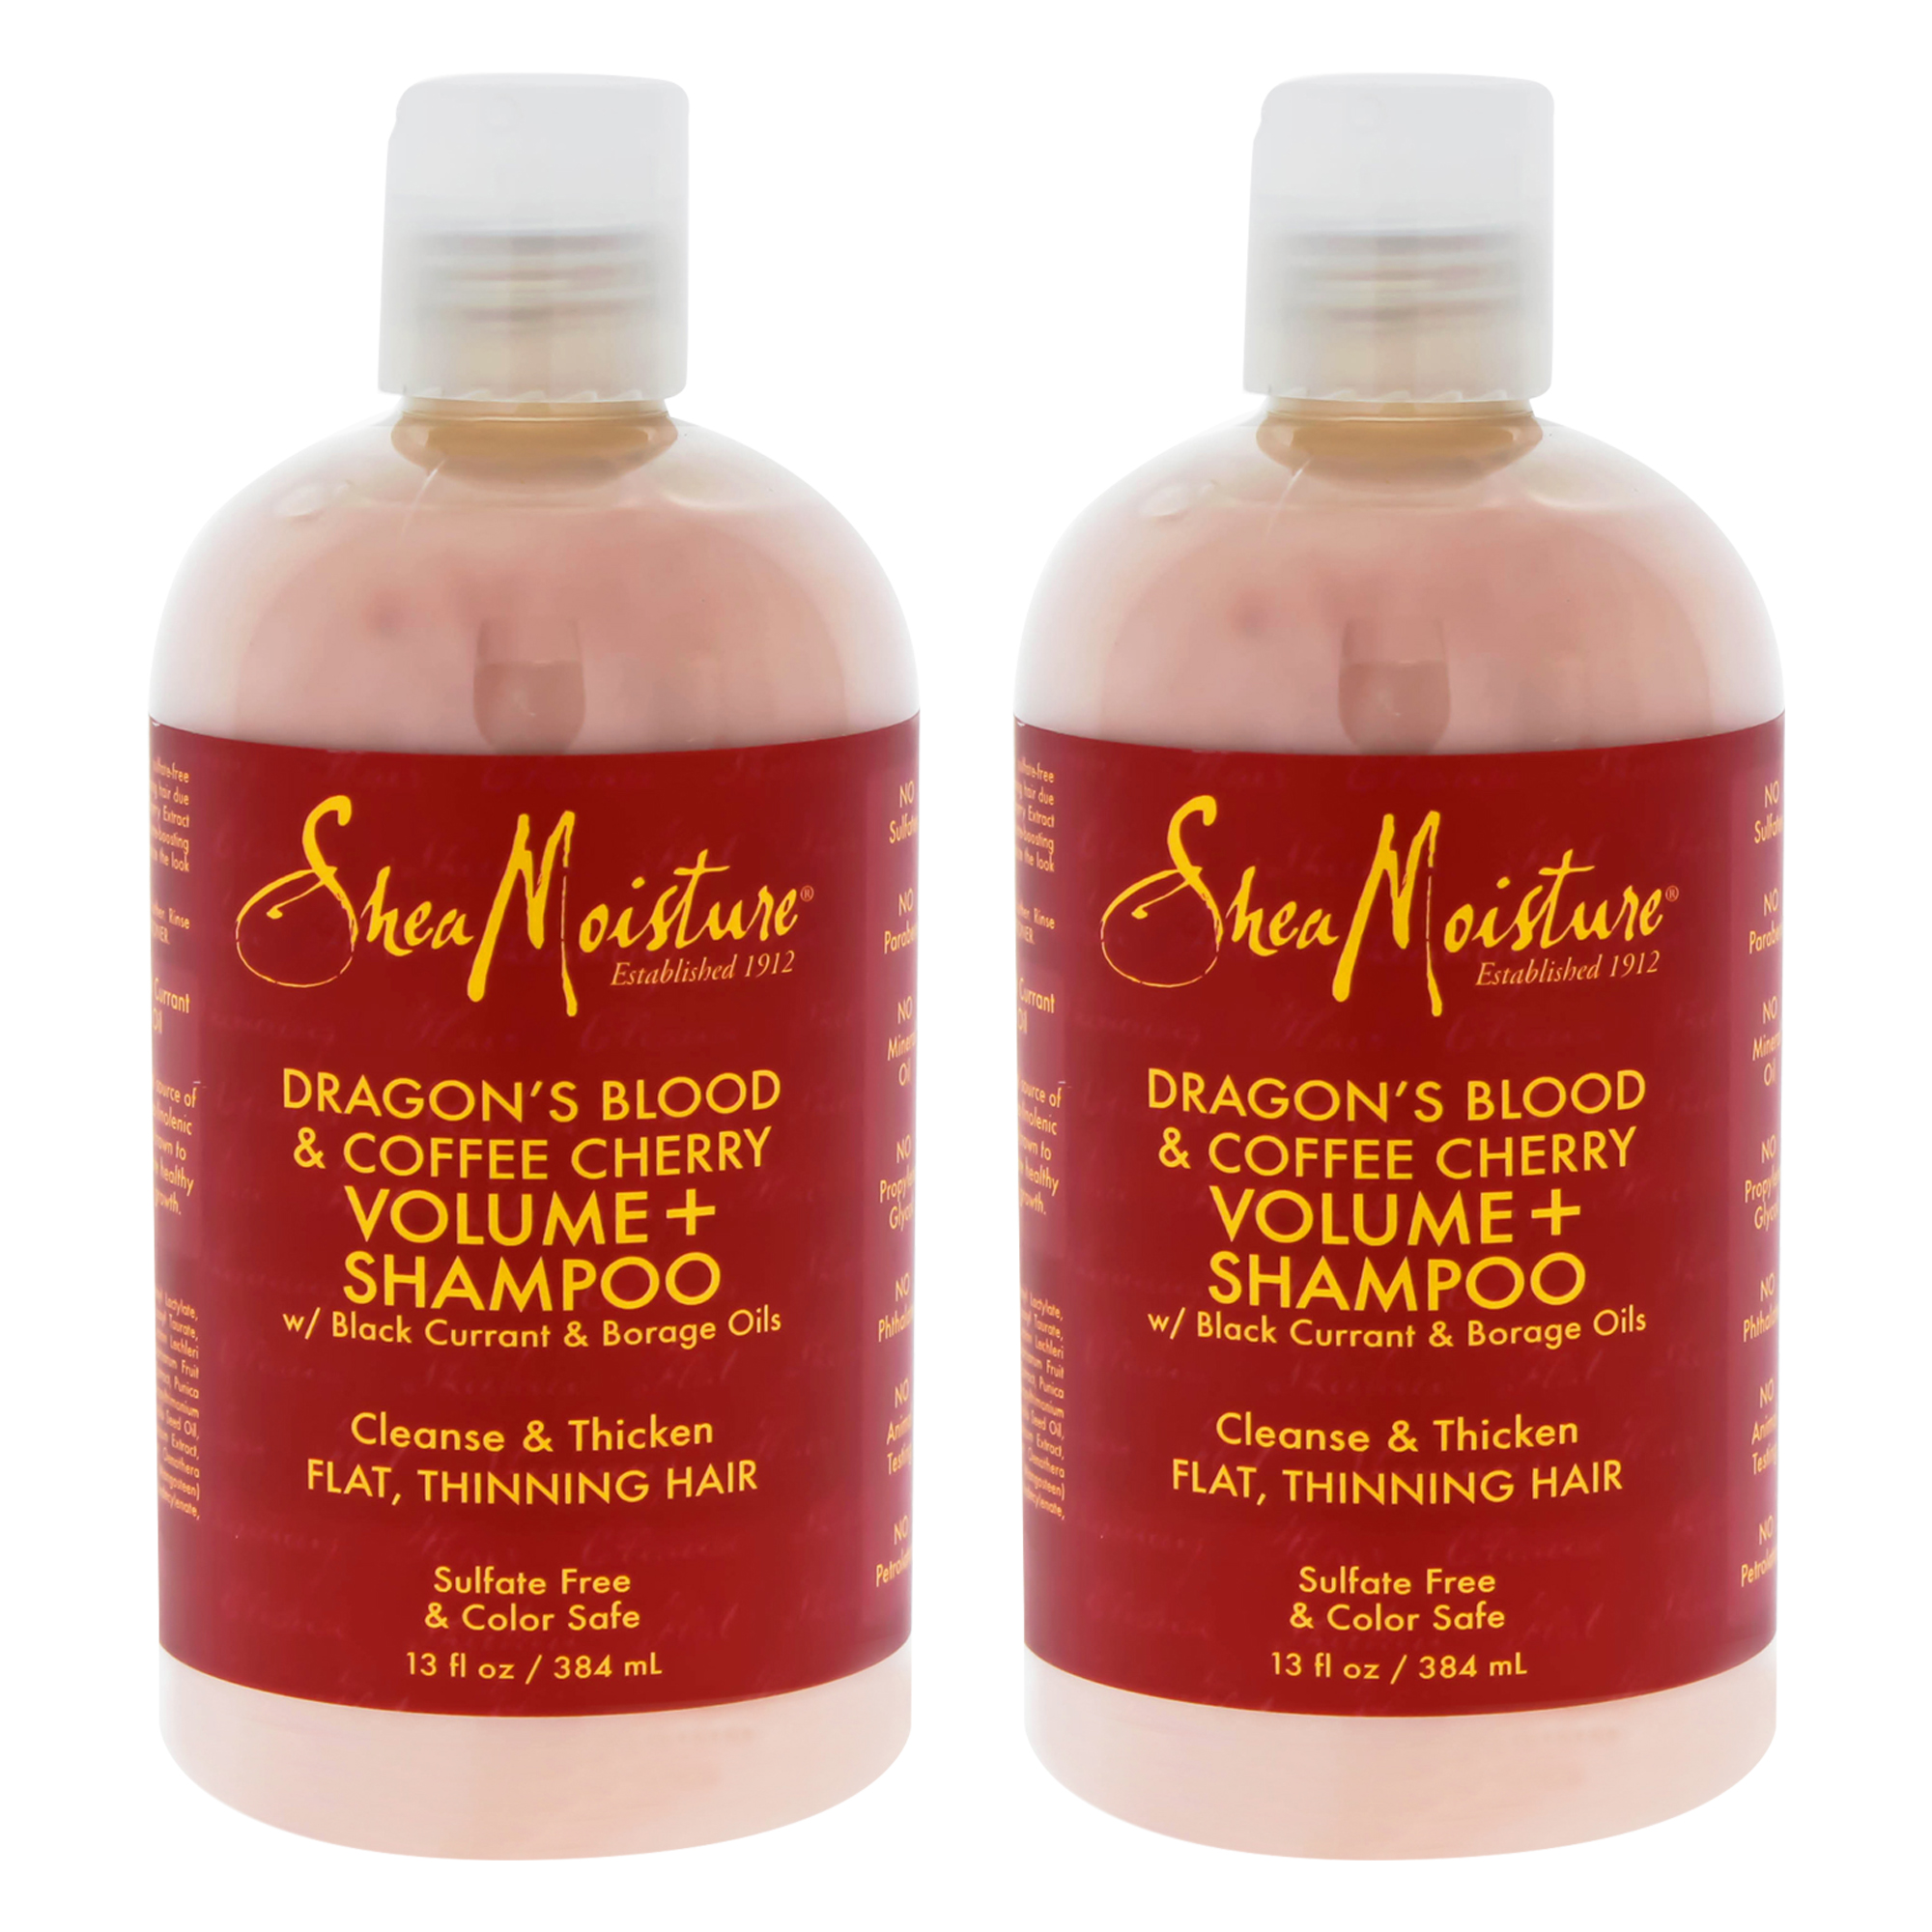 Dragons Blood and Coffee Cherry Volume Shampoo by Shea Moisture for Unisex - 13 oz Shampoo - Pack of 2